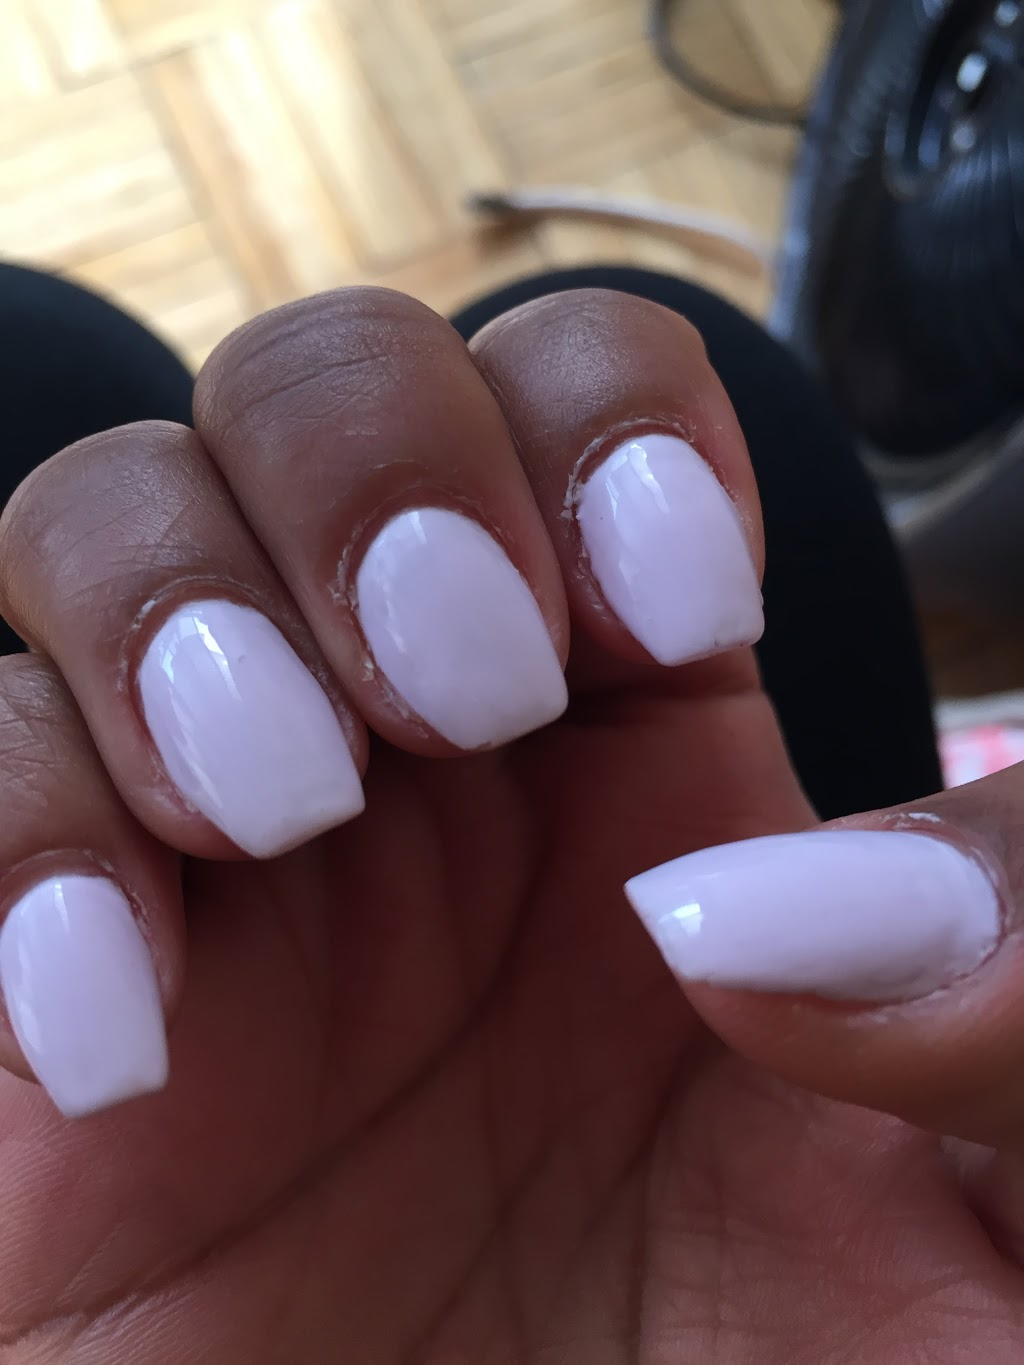 Smart Nails & Aesthetics | hair care | 17 Worthington Ave, Brampton, ON L7A 2Y7, Canada | 9059700404 OR +1 905-970-0404